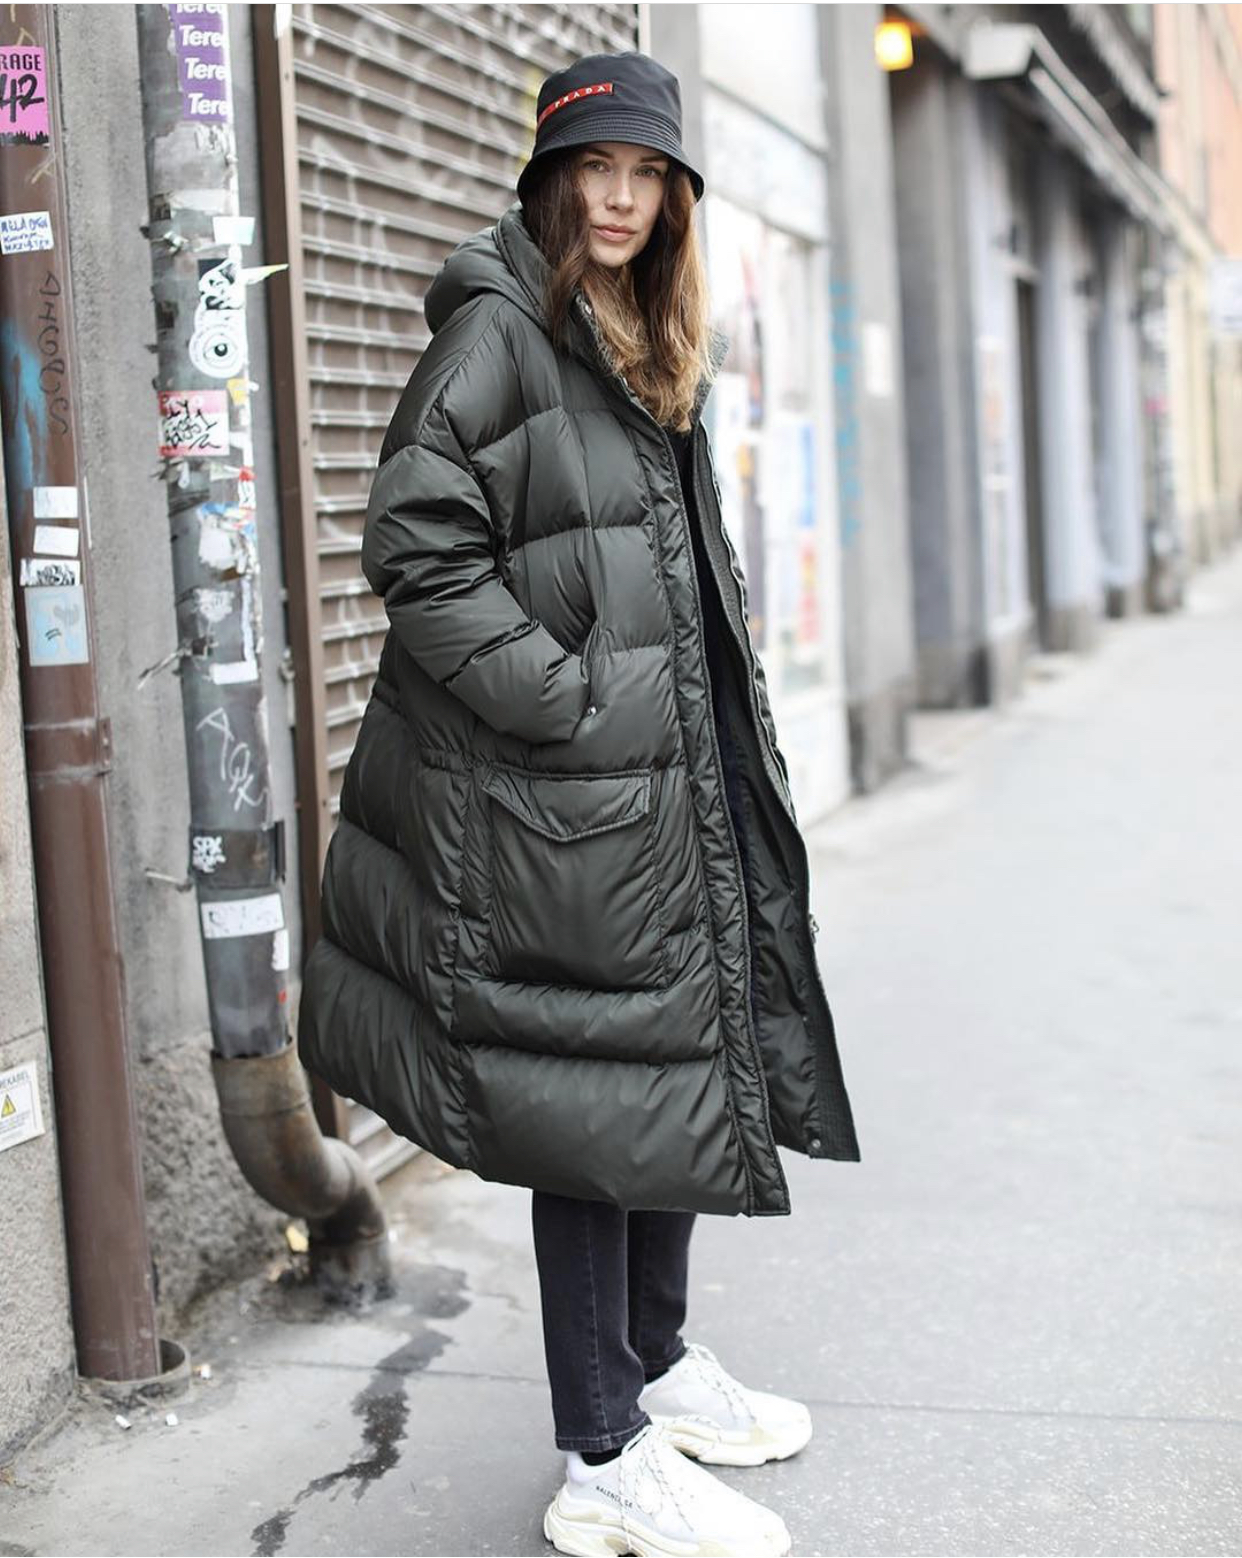 In Fashion | Winter Style Inspiration: Long Puffer Jacket